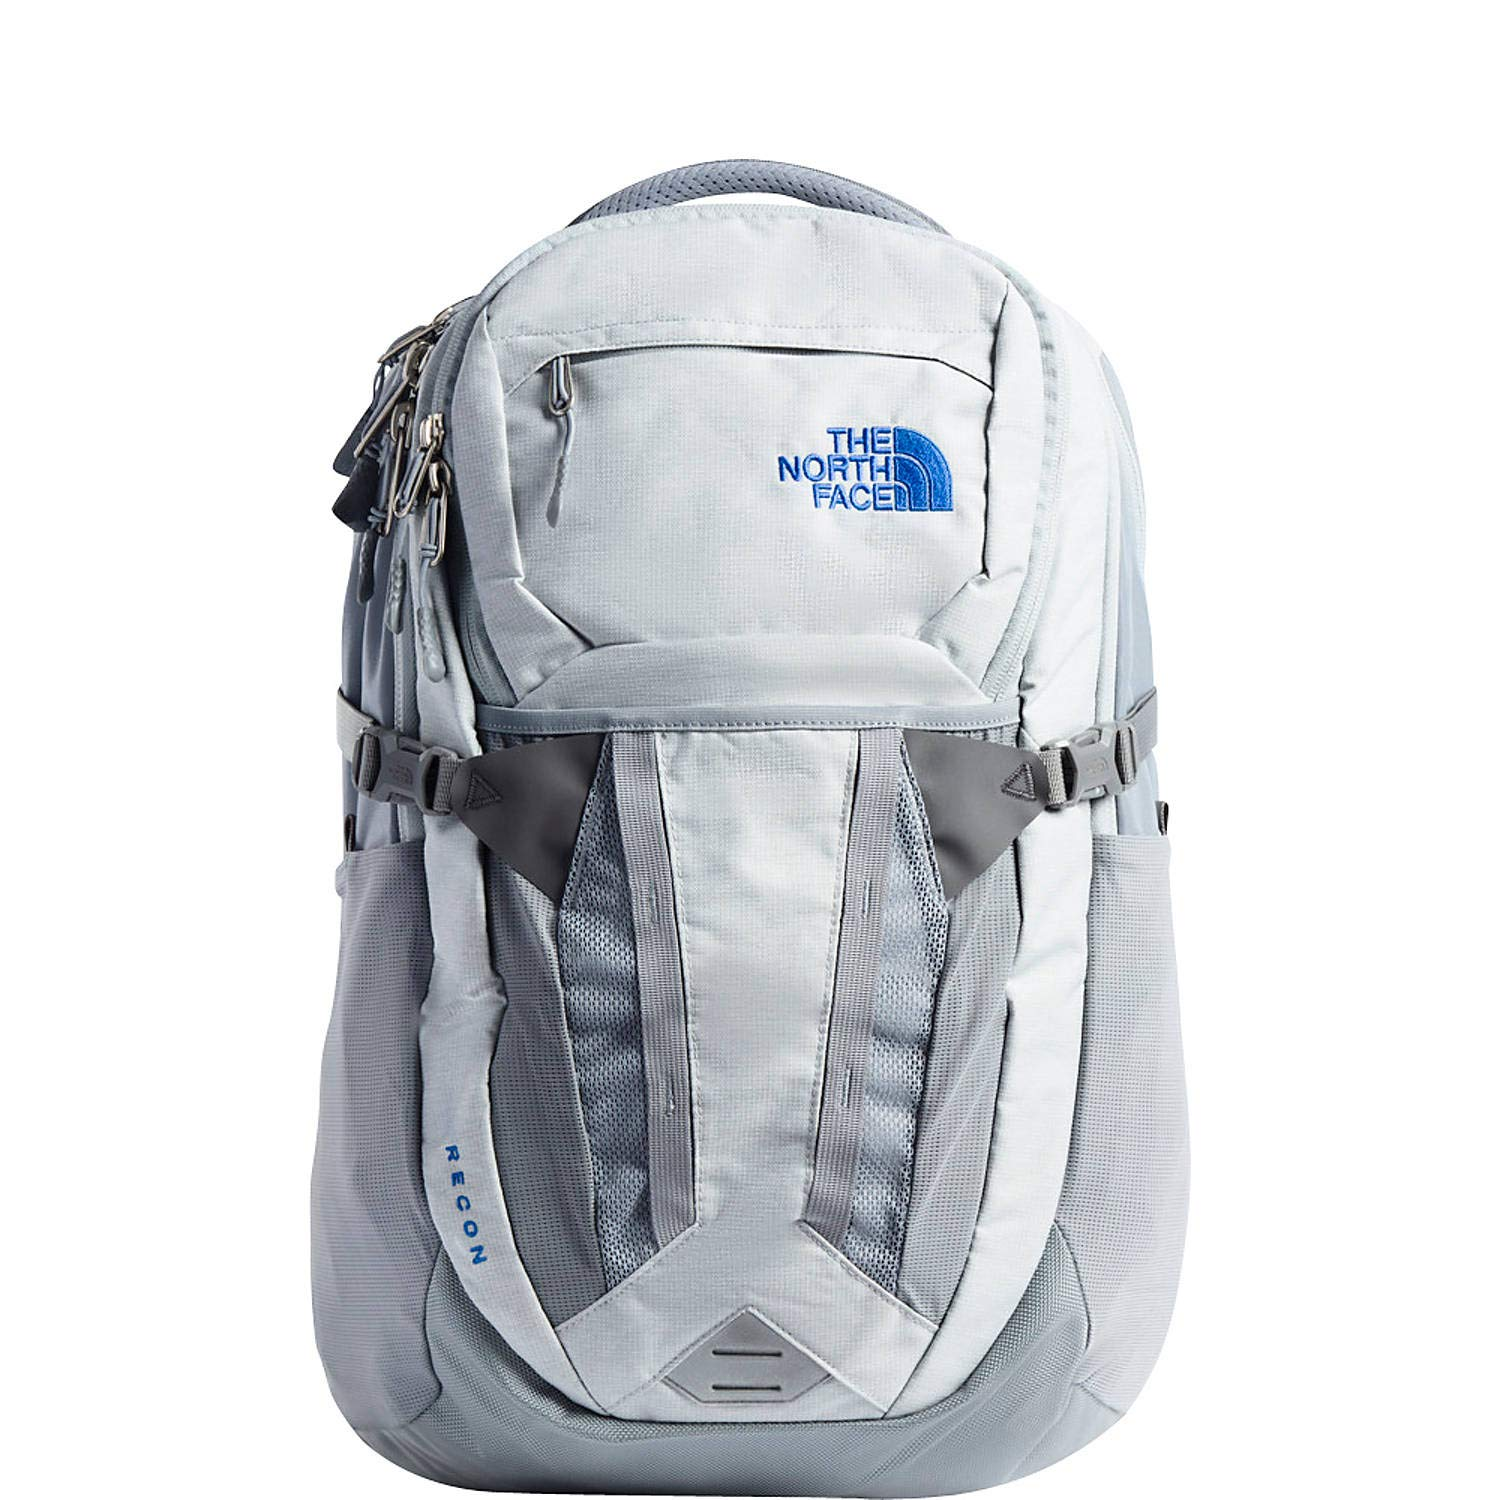 The North Face Recon Backpack - High Rise Grey Light Heather/Mid Grey